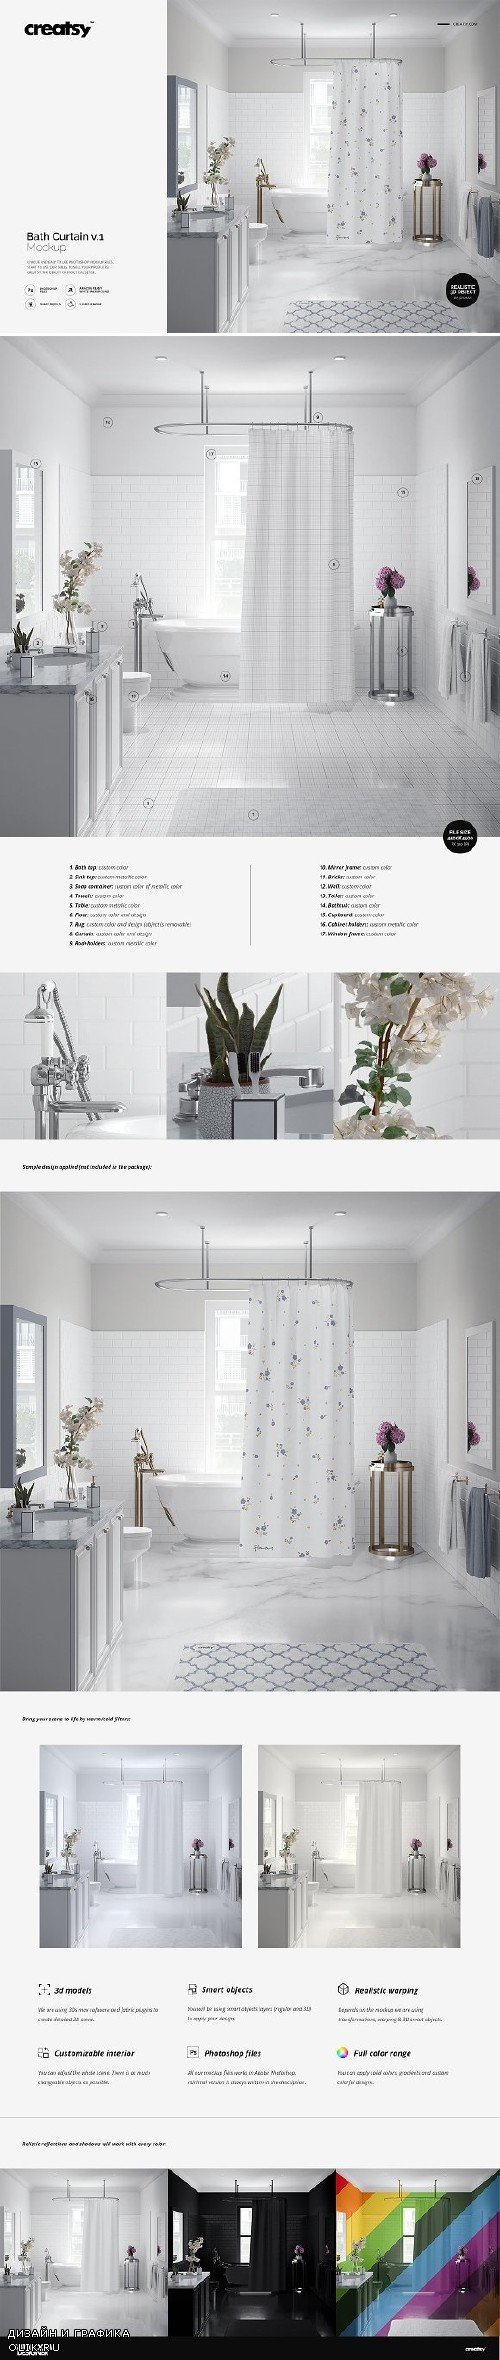 Luxury Bathroom Bath Curtain Mockup 2396453